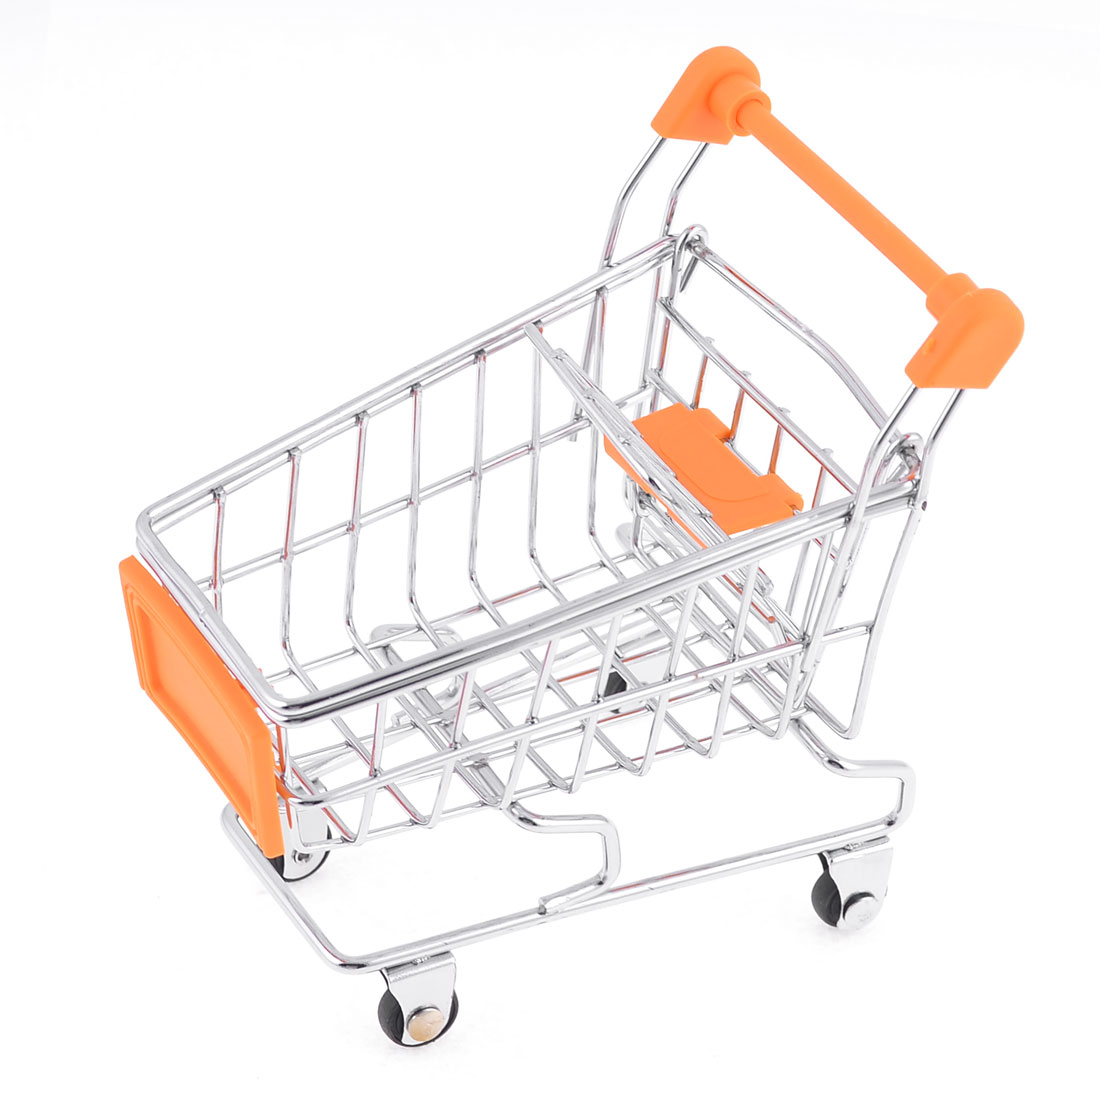 Stainless Steel Mini Shopping Cart Model Container Room Ornament for Children Child Kids Orange